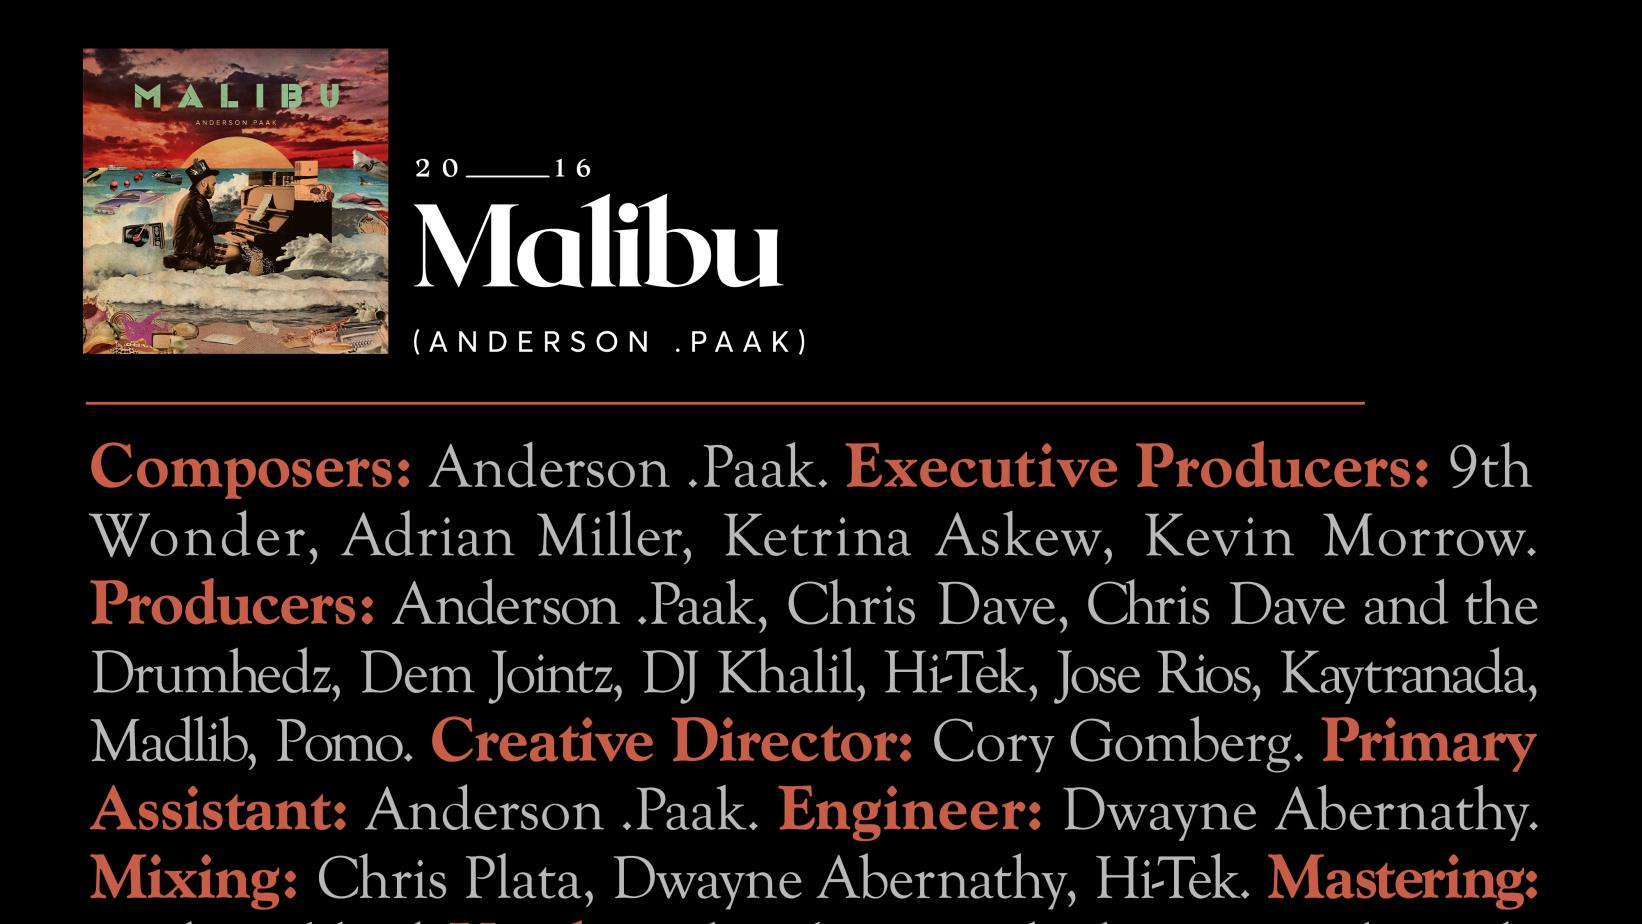 Anderson. Paak Malibu Credit Cover